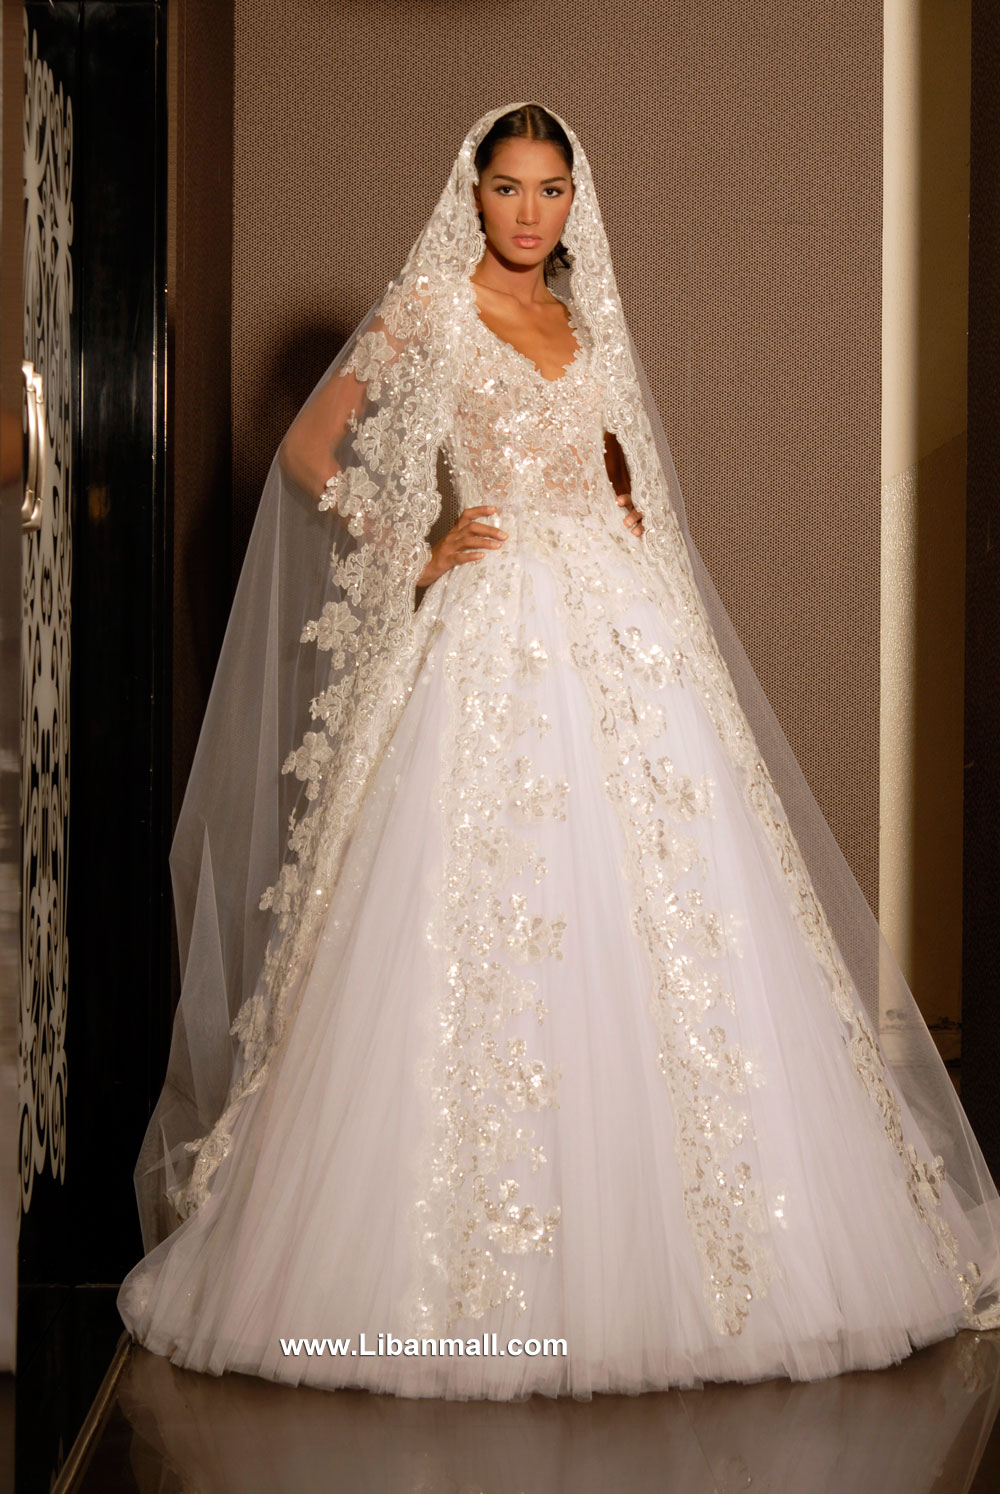 Wedding dresses lebanese designers wedding ideas for Lebanese wedding dress designers